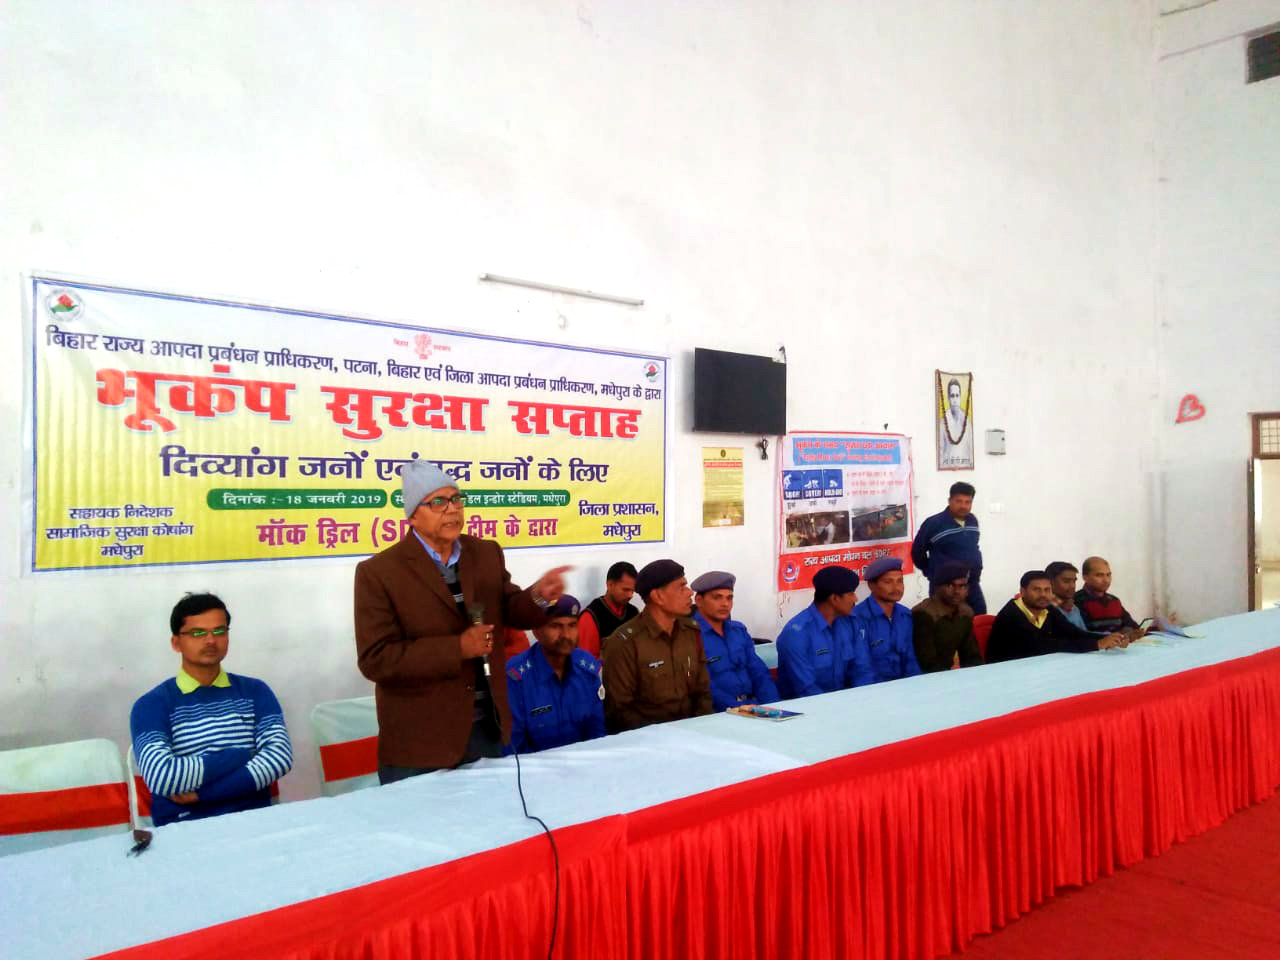 Dr.Madhepuri giving inaugural speech at the event of